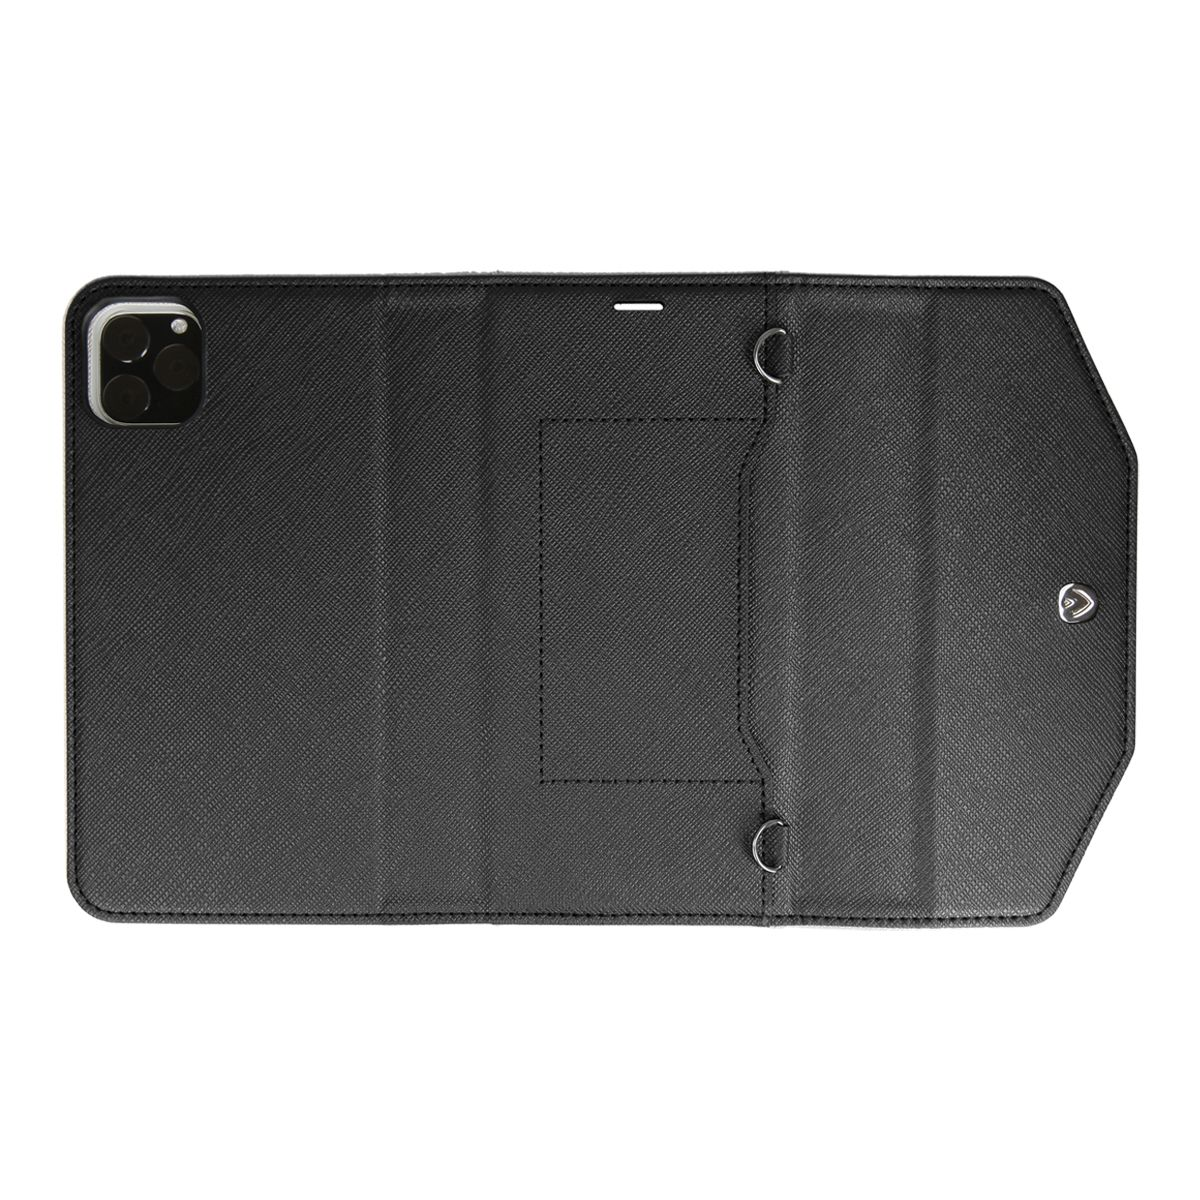 clutch black nuit iphone 11 pro